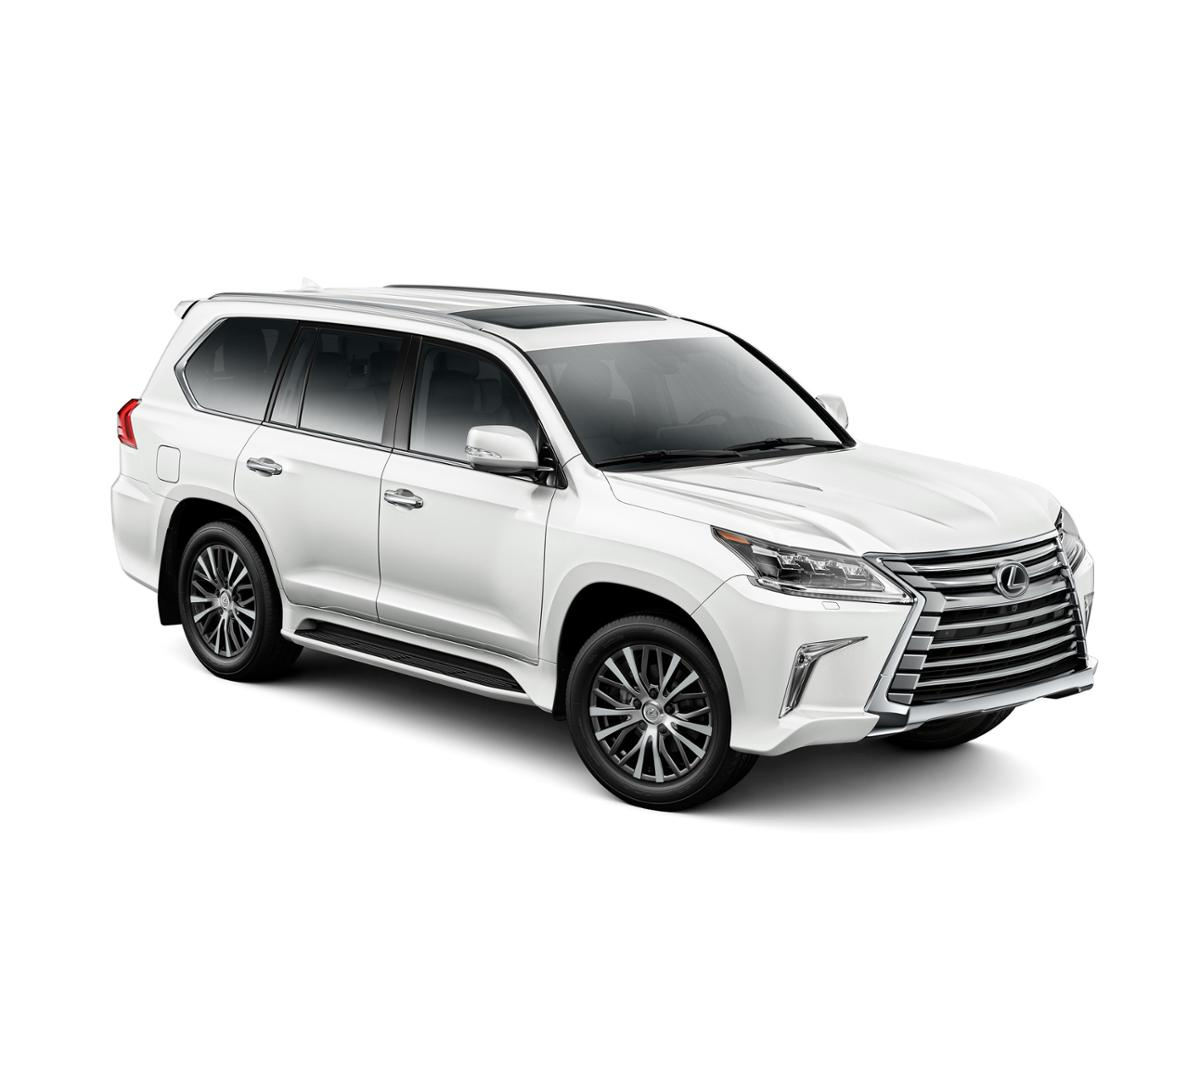 2019 Lexus LX 570 Vehicle Photo in Modesto, CA 95356